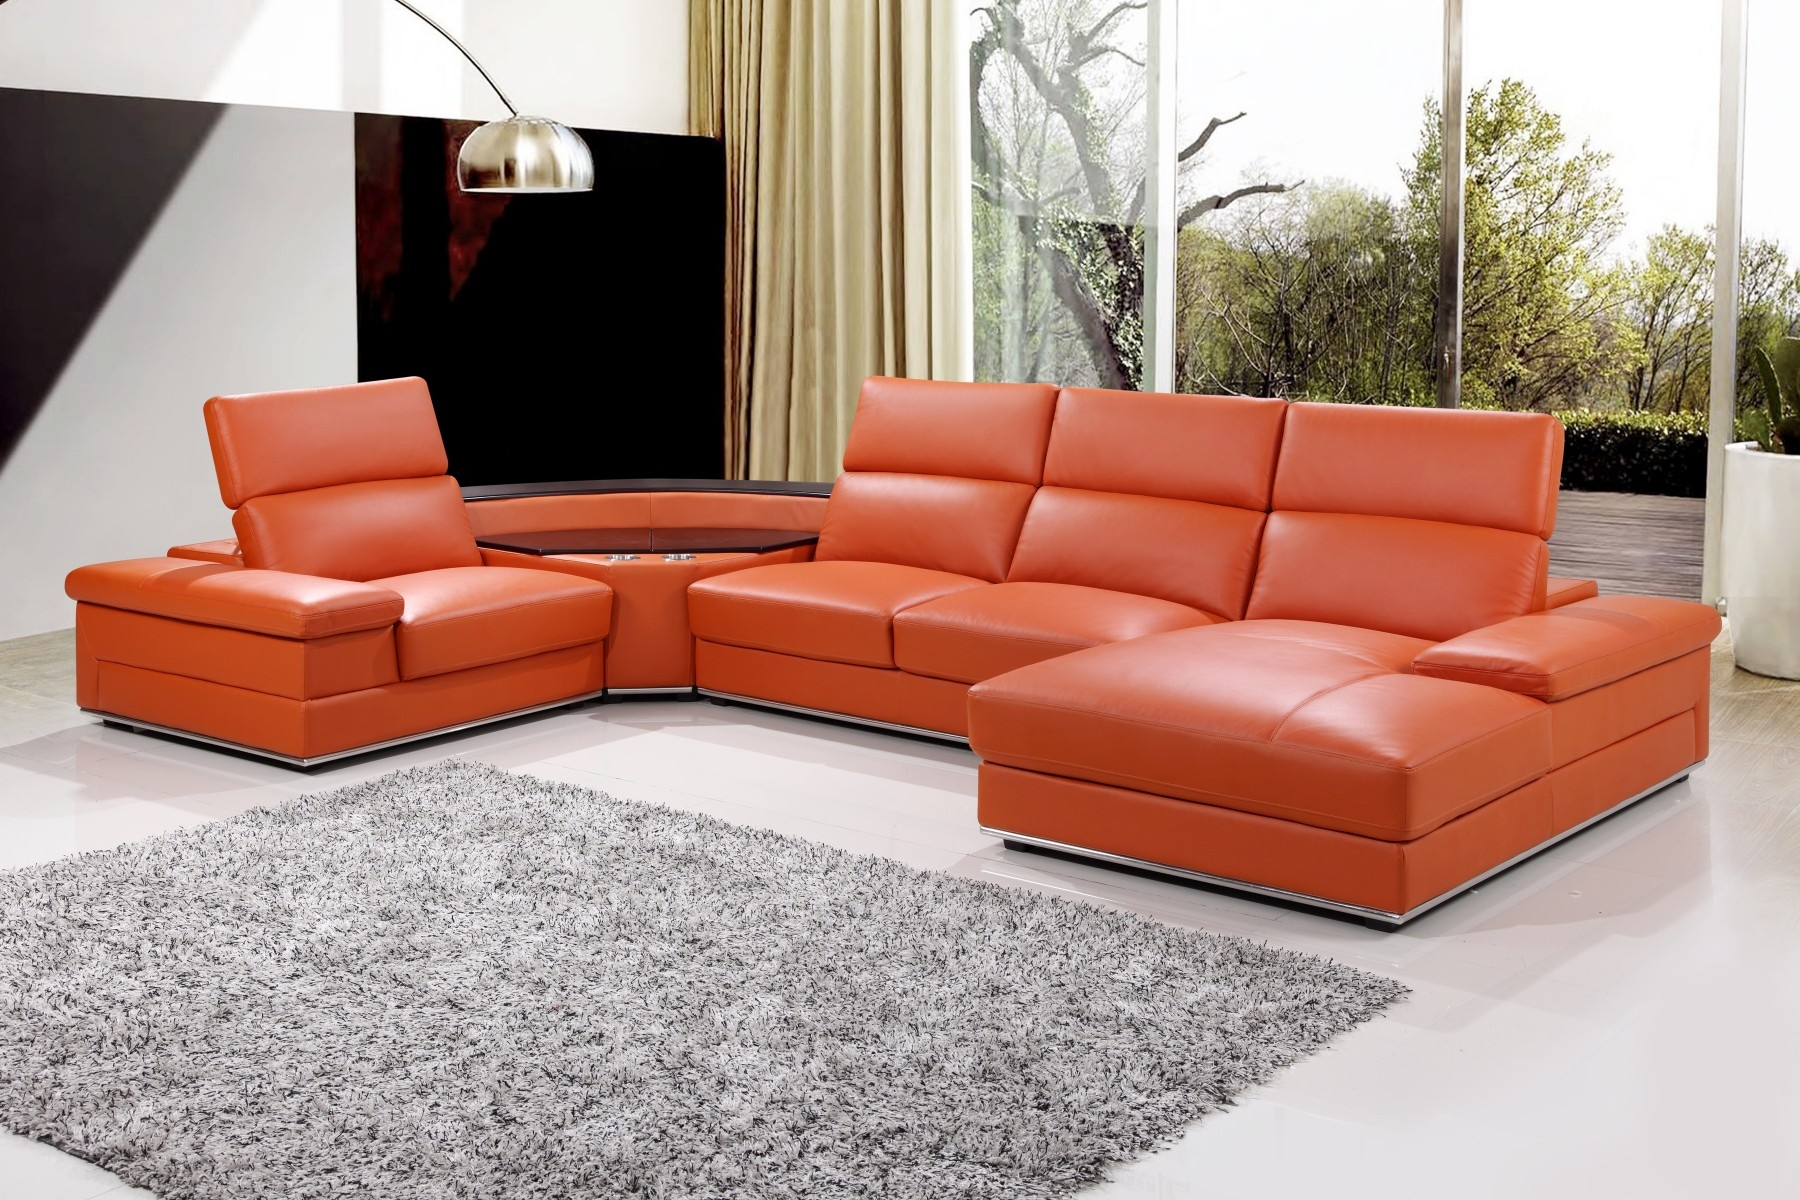 12 Collection of Eco Friendly Sectional Sofa